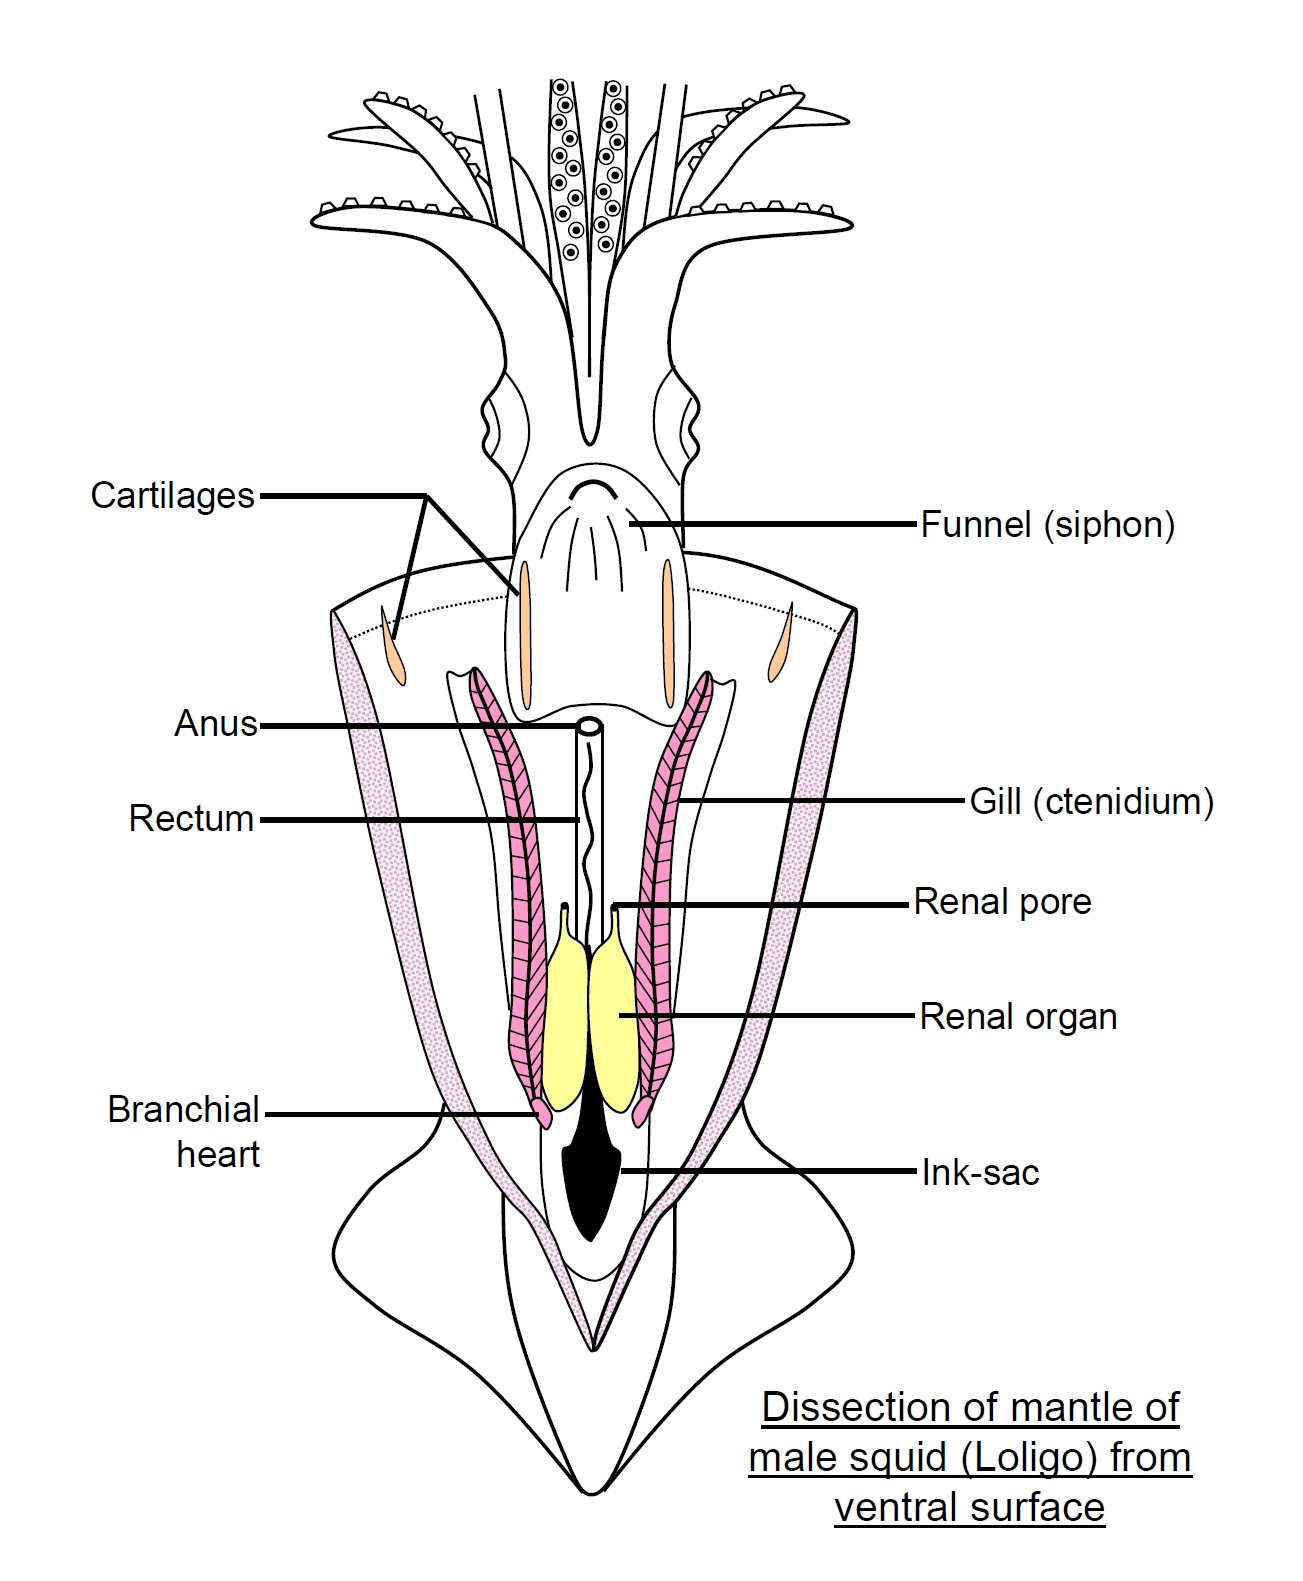 Labeled Squid http://ajilbab.com/frog/frog-dissection-diagram-labeled.htm